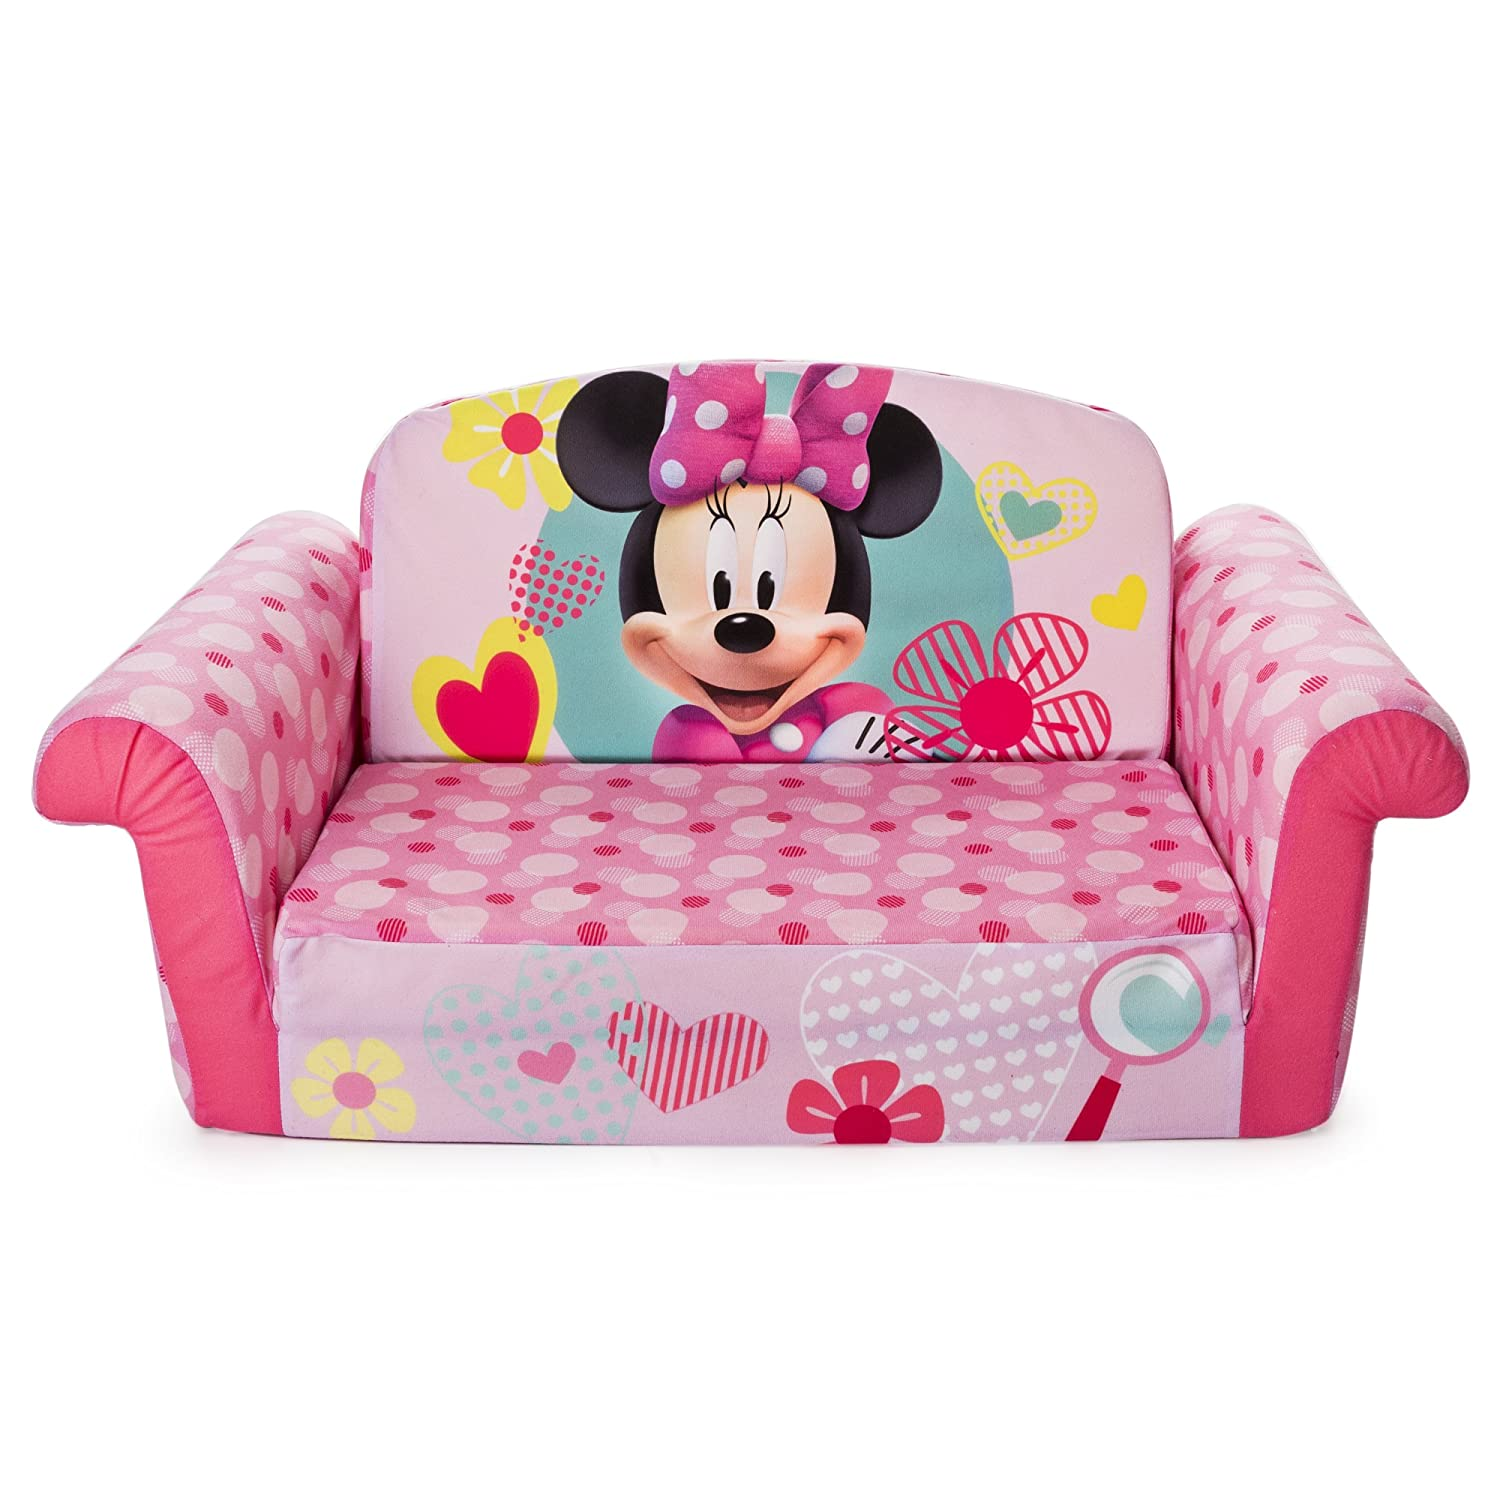 Excellent Marshmallow Furniture Childrens 2 In 1 Flip Open Foam Sofa Minnie Mouse By Spin Master Download Free Architecture Designs Scobabritishbridgeorg